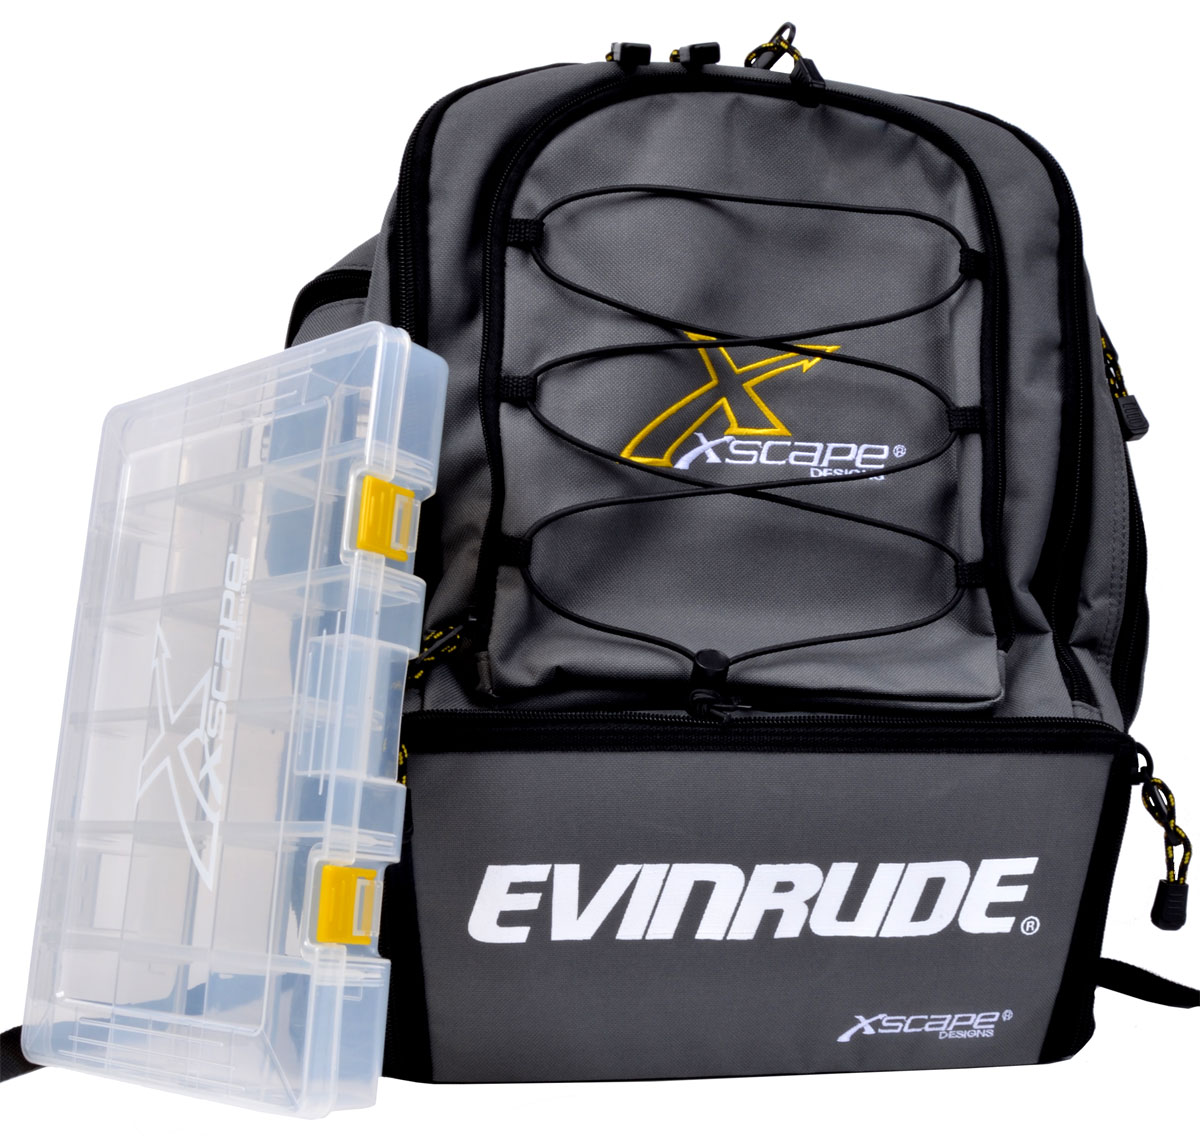 Buy fishing gear online at evinrude for Fishing backpack tackle bag